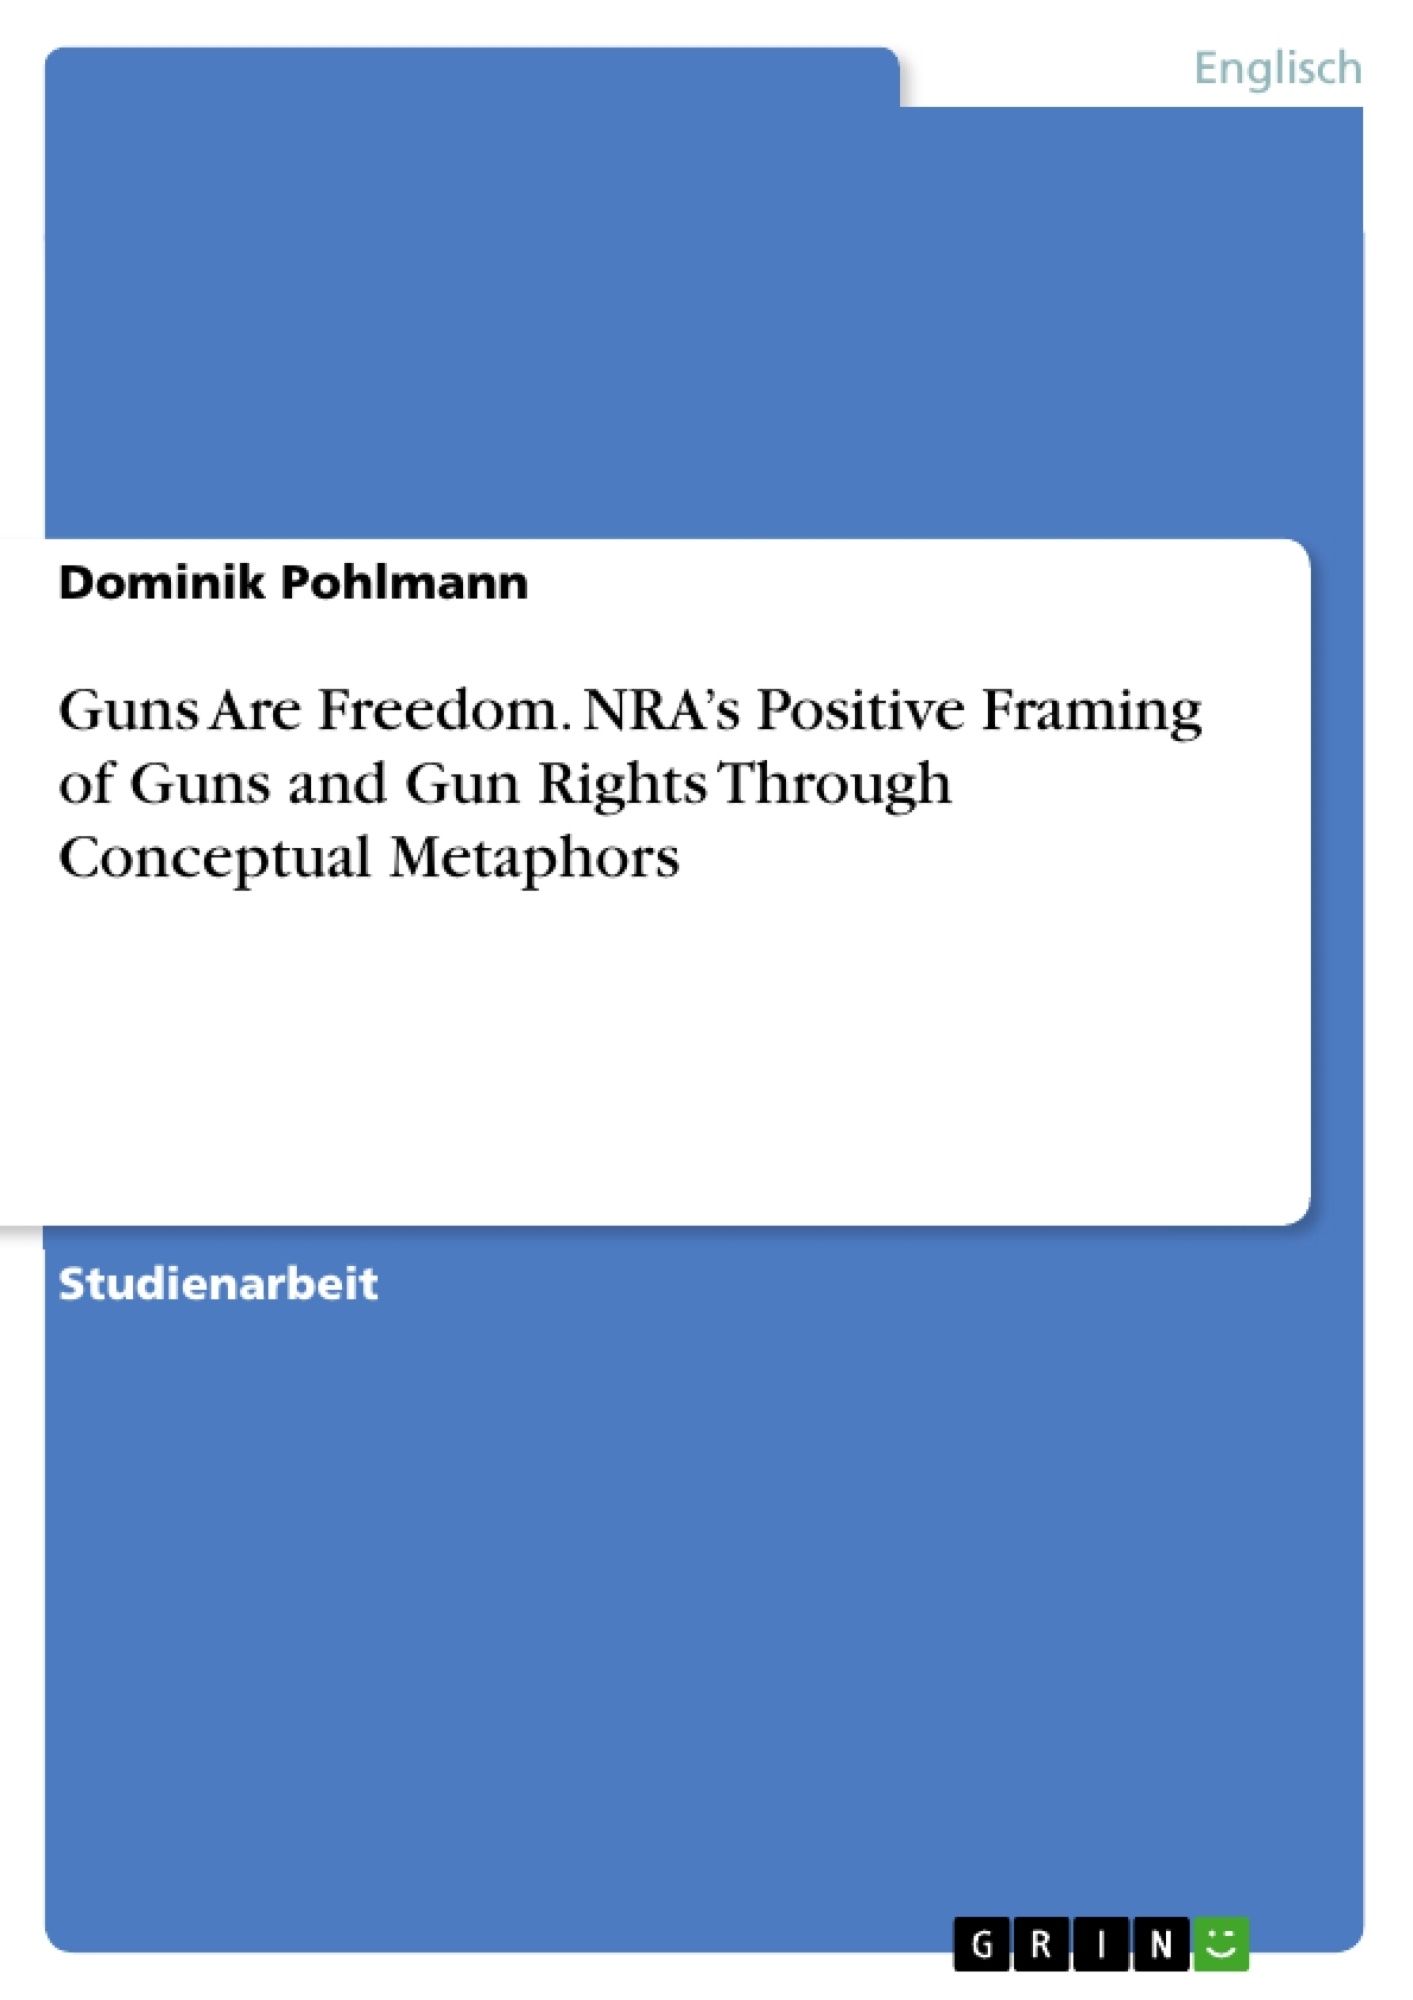 Titel: Guns Are Freedom. NRA's Positive Framing of Guns and Gun Rights Through Conceptual Metaphors